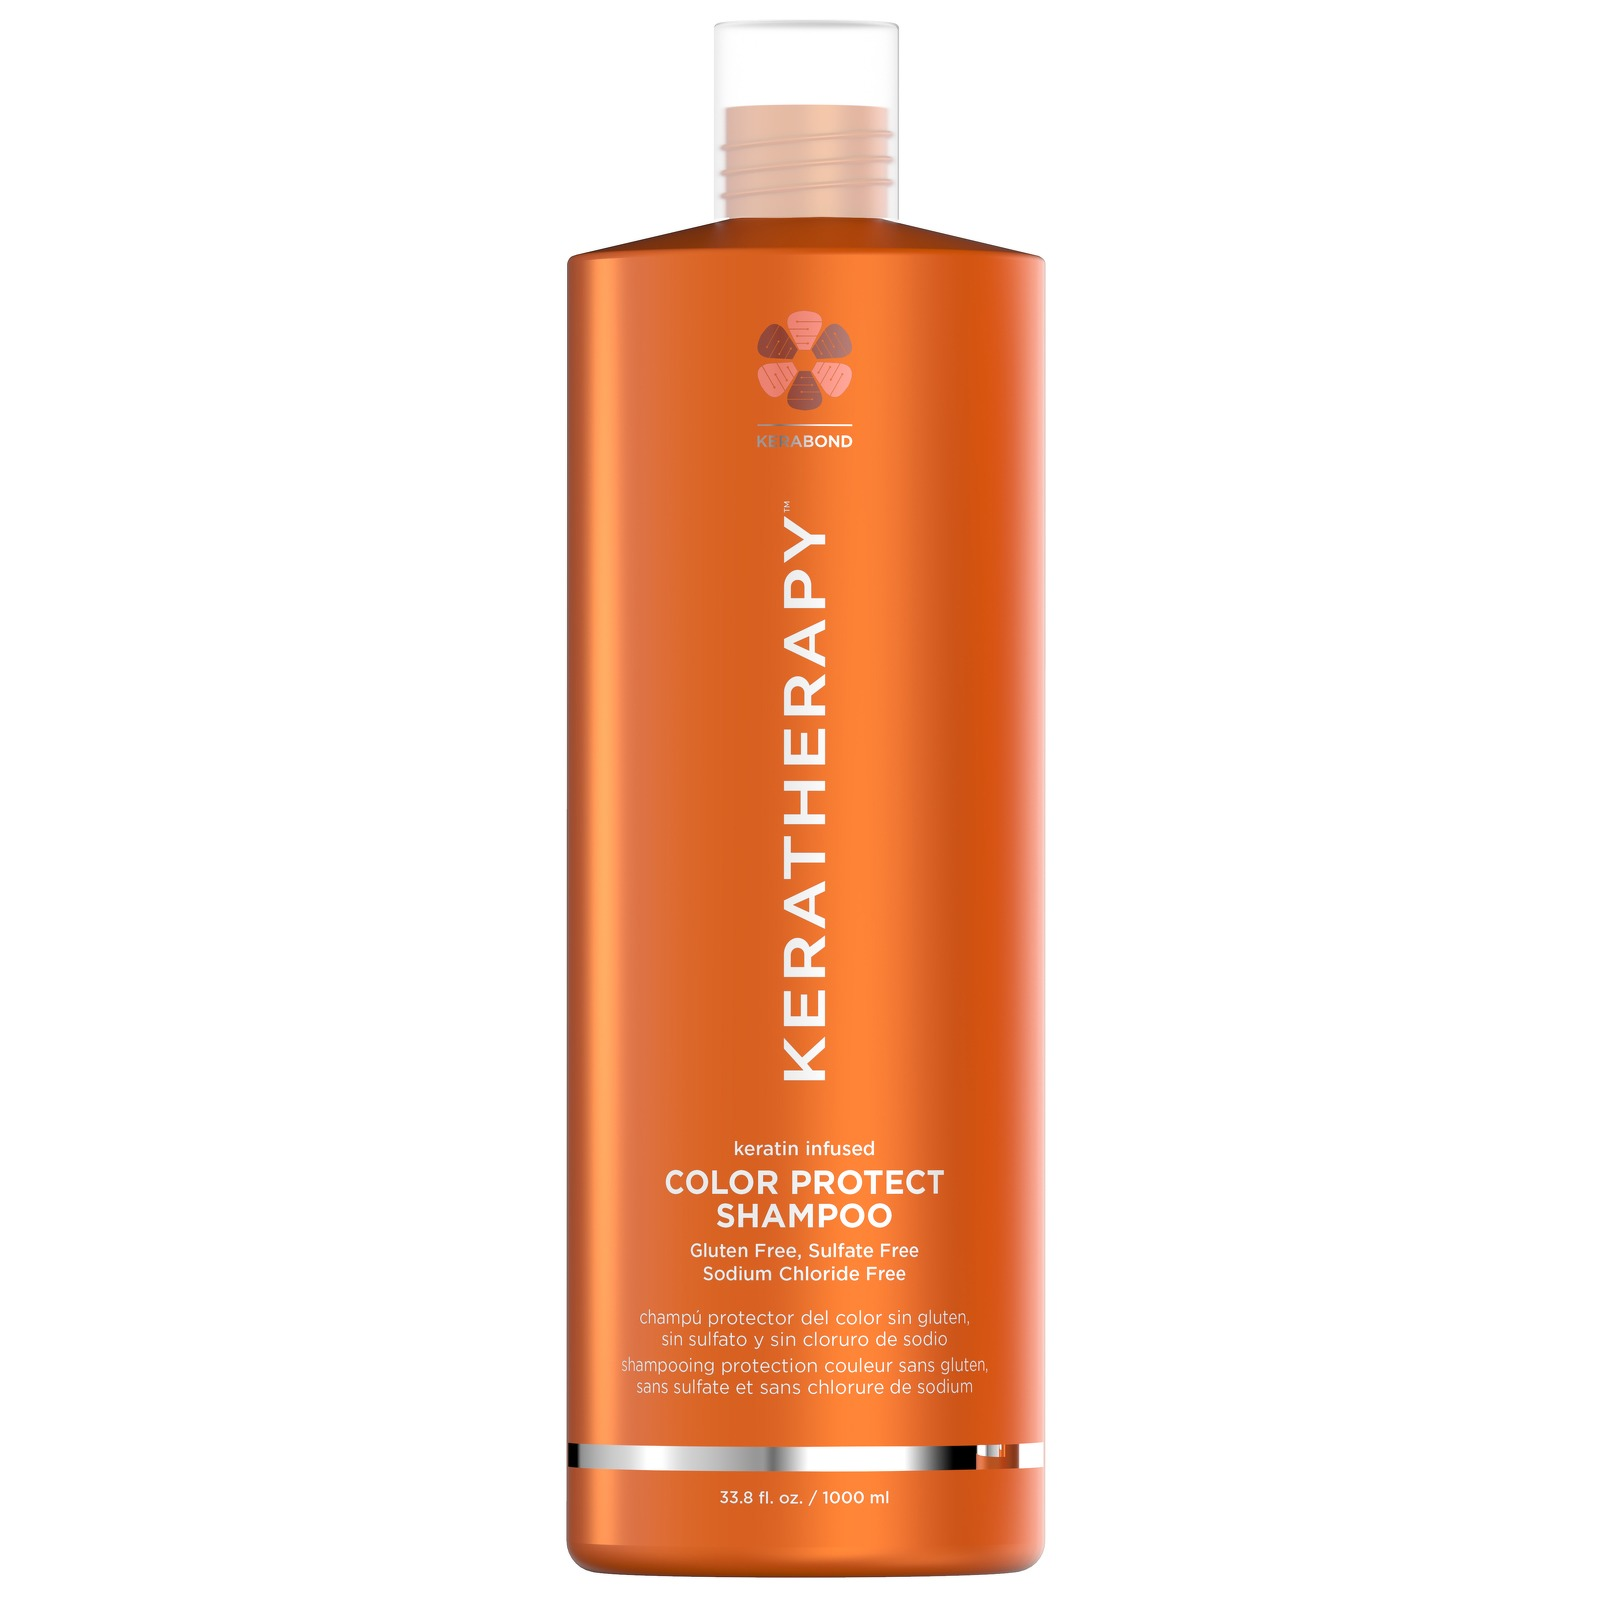 Keratherapy Keratin Infused Color Protect Gluten Free Shampoo 1000ml